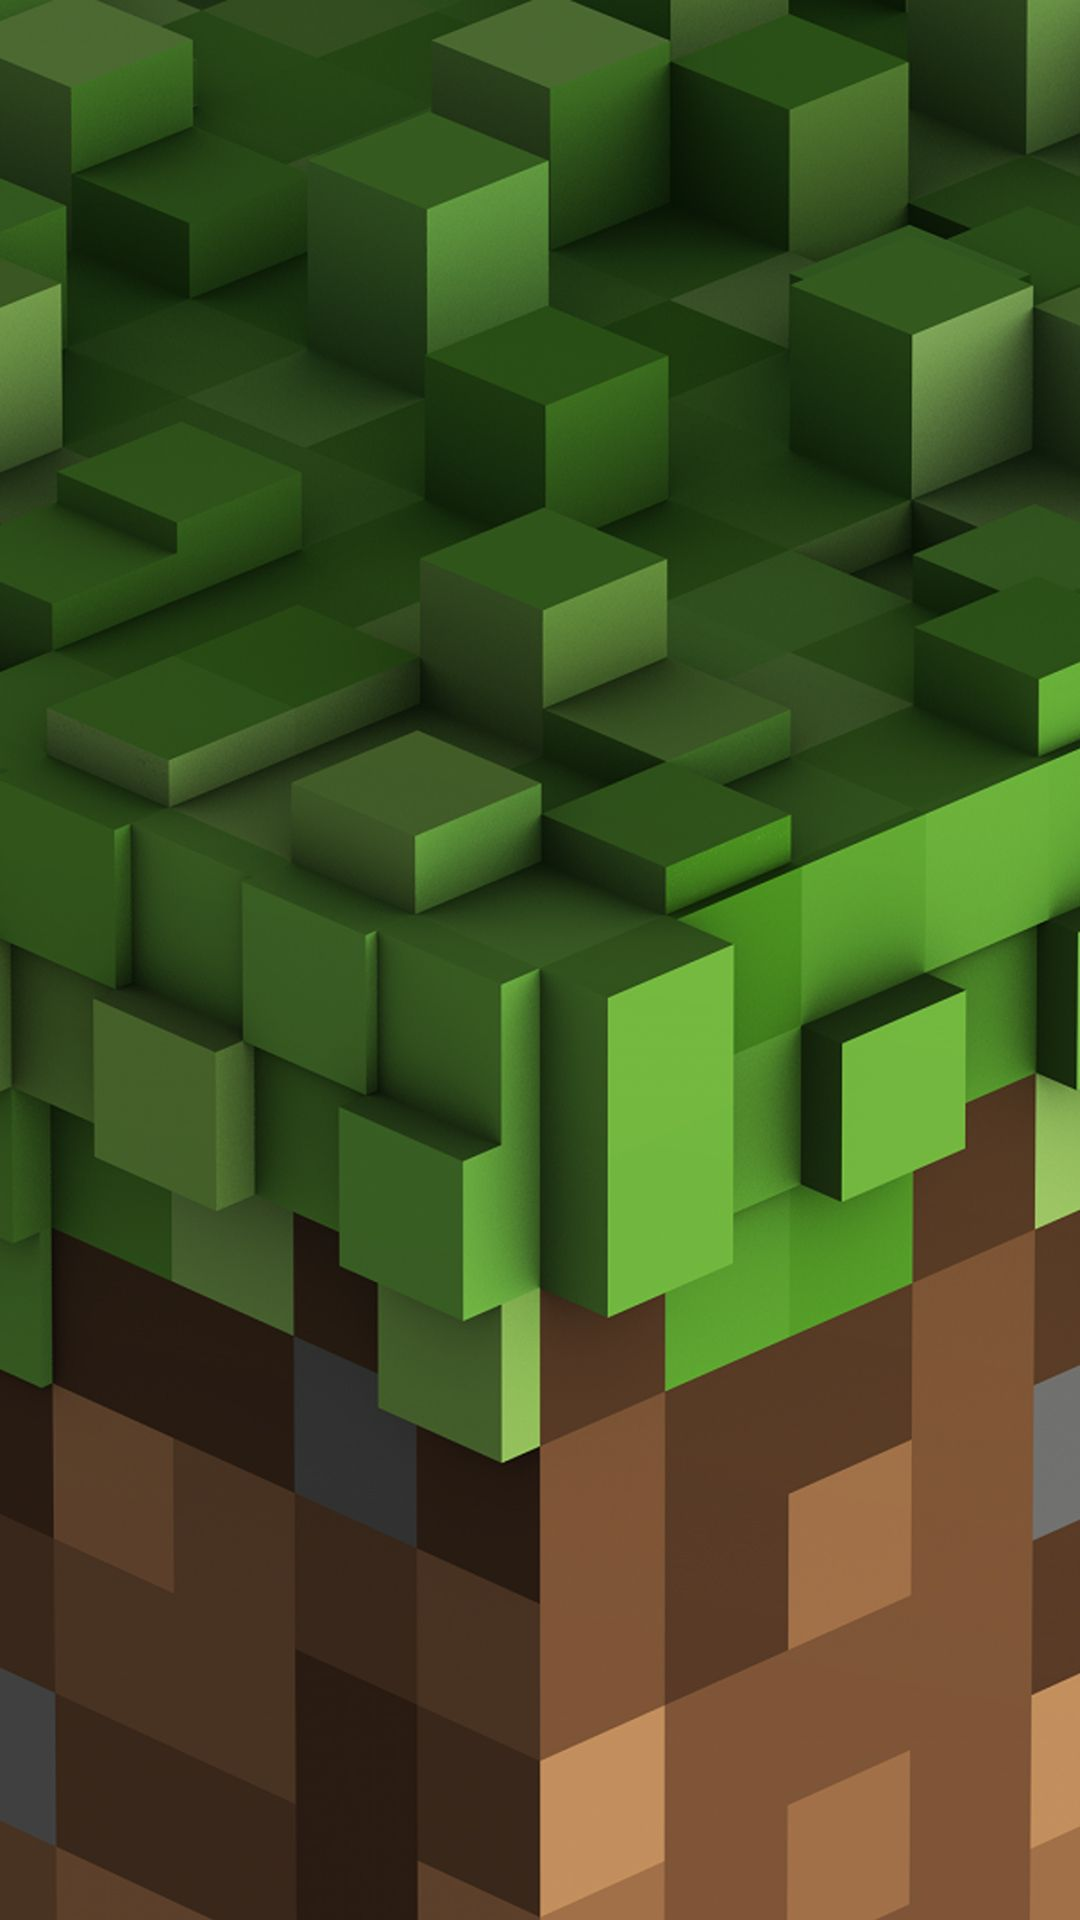 Minecraft HD Phone Wallpapers - Top